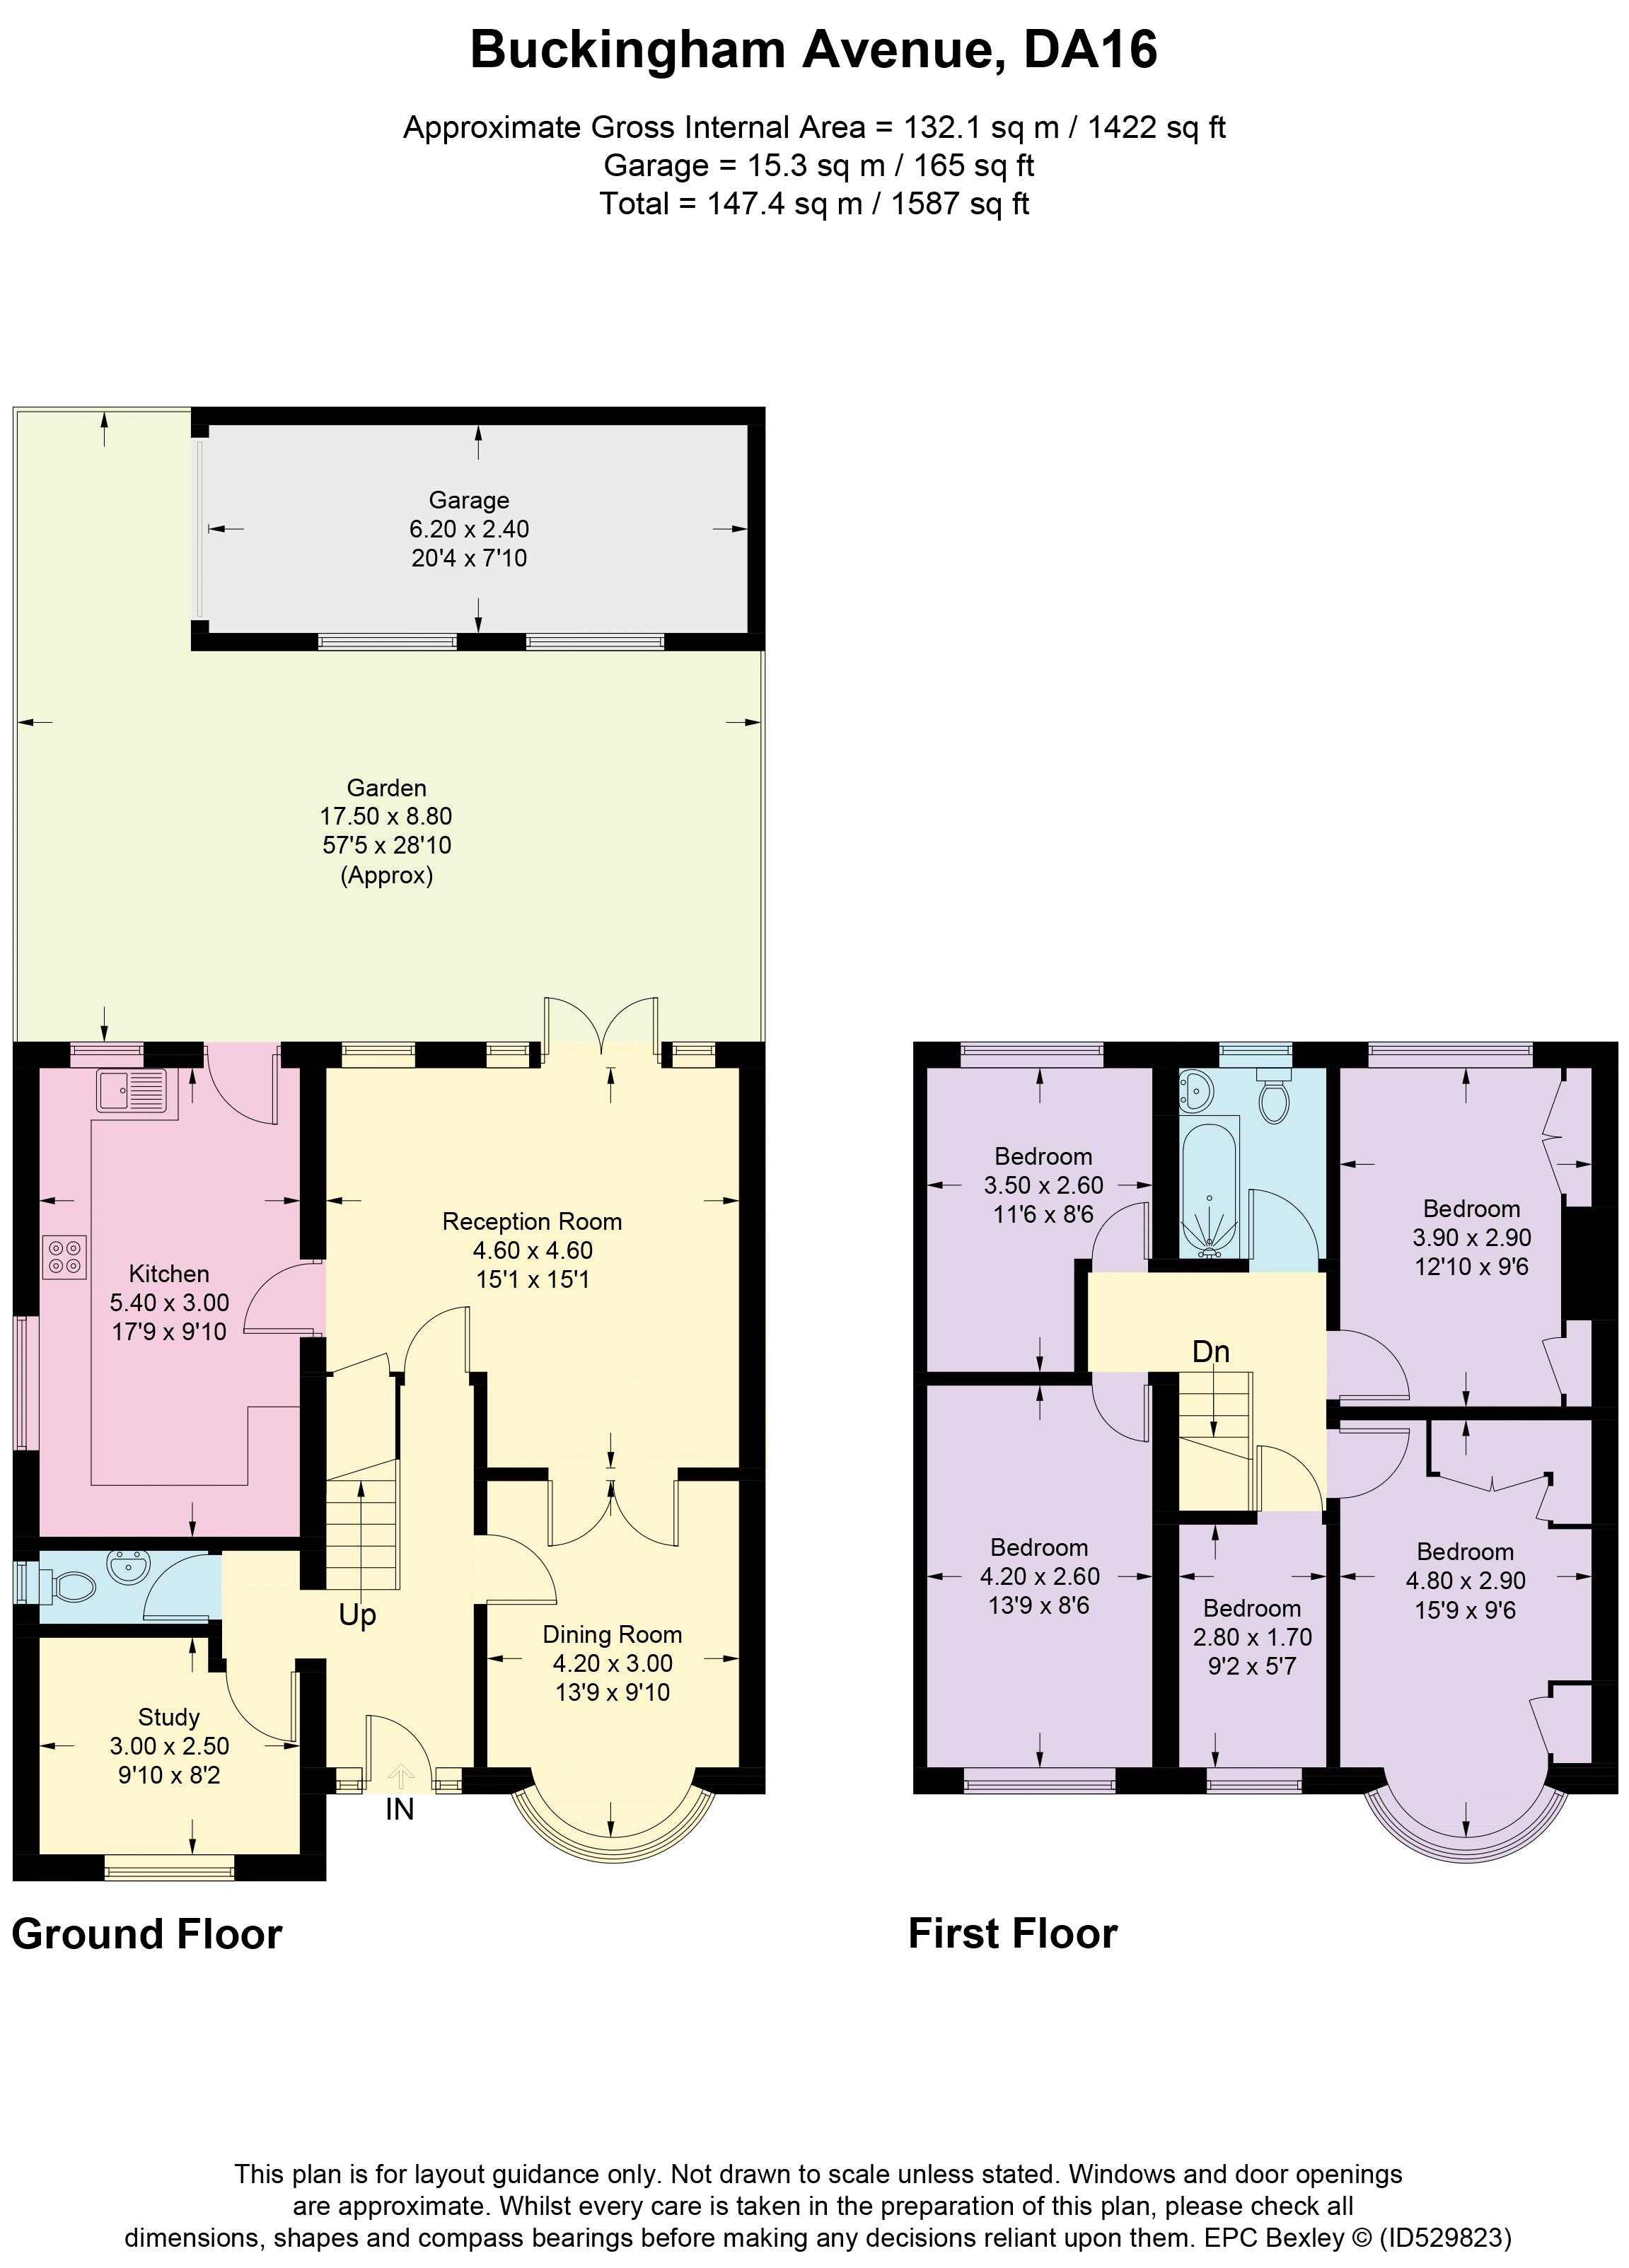 Buckingham Avenue Floorplan